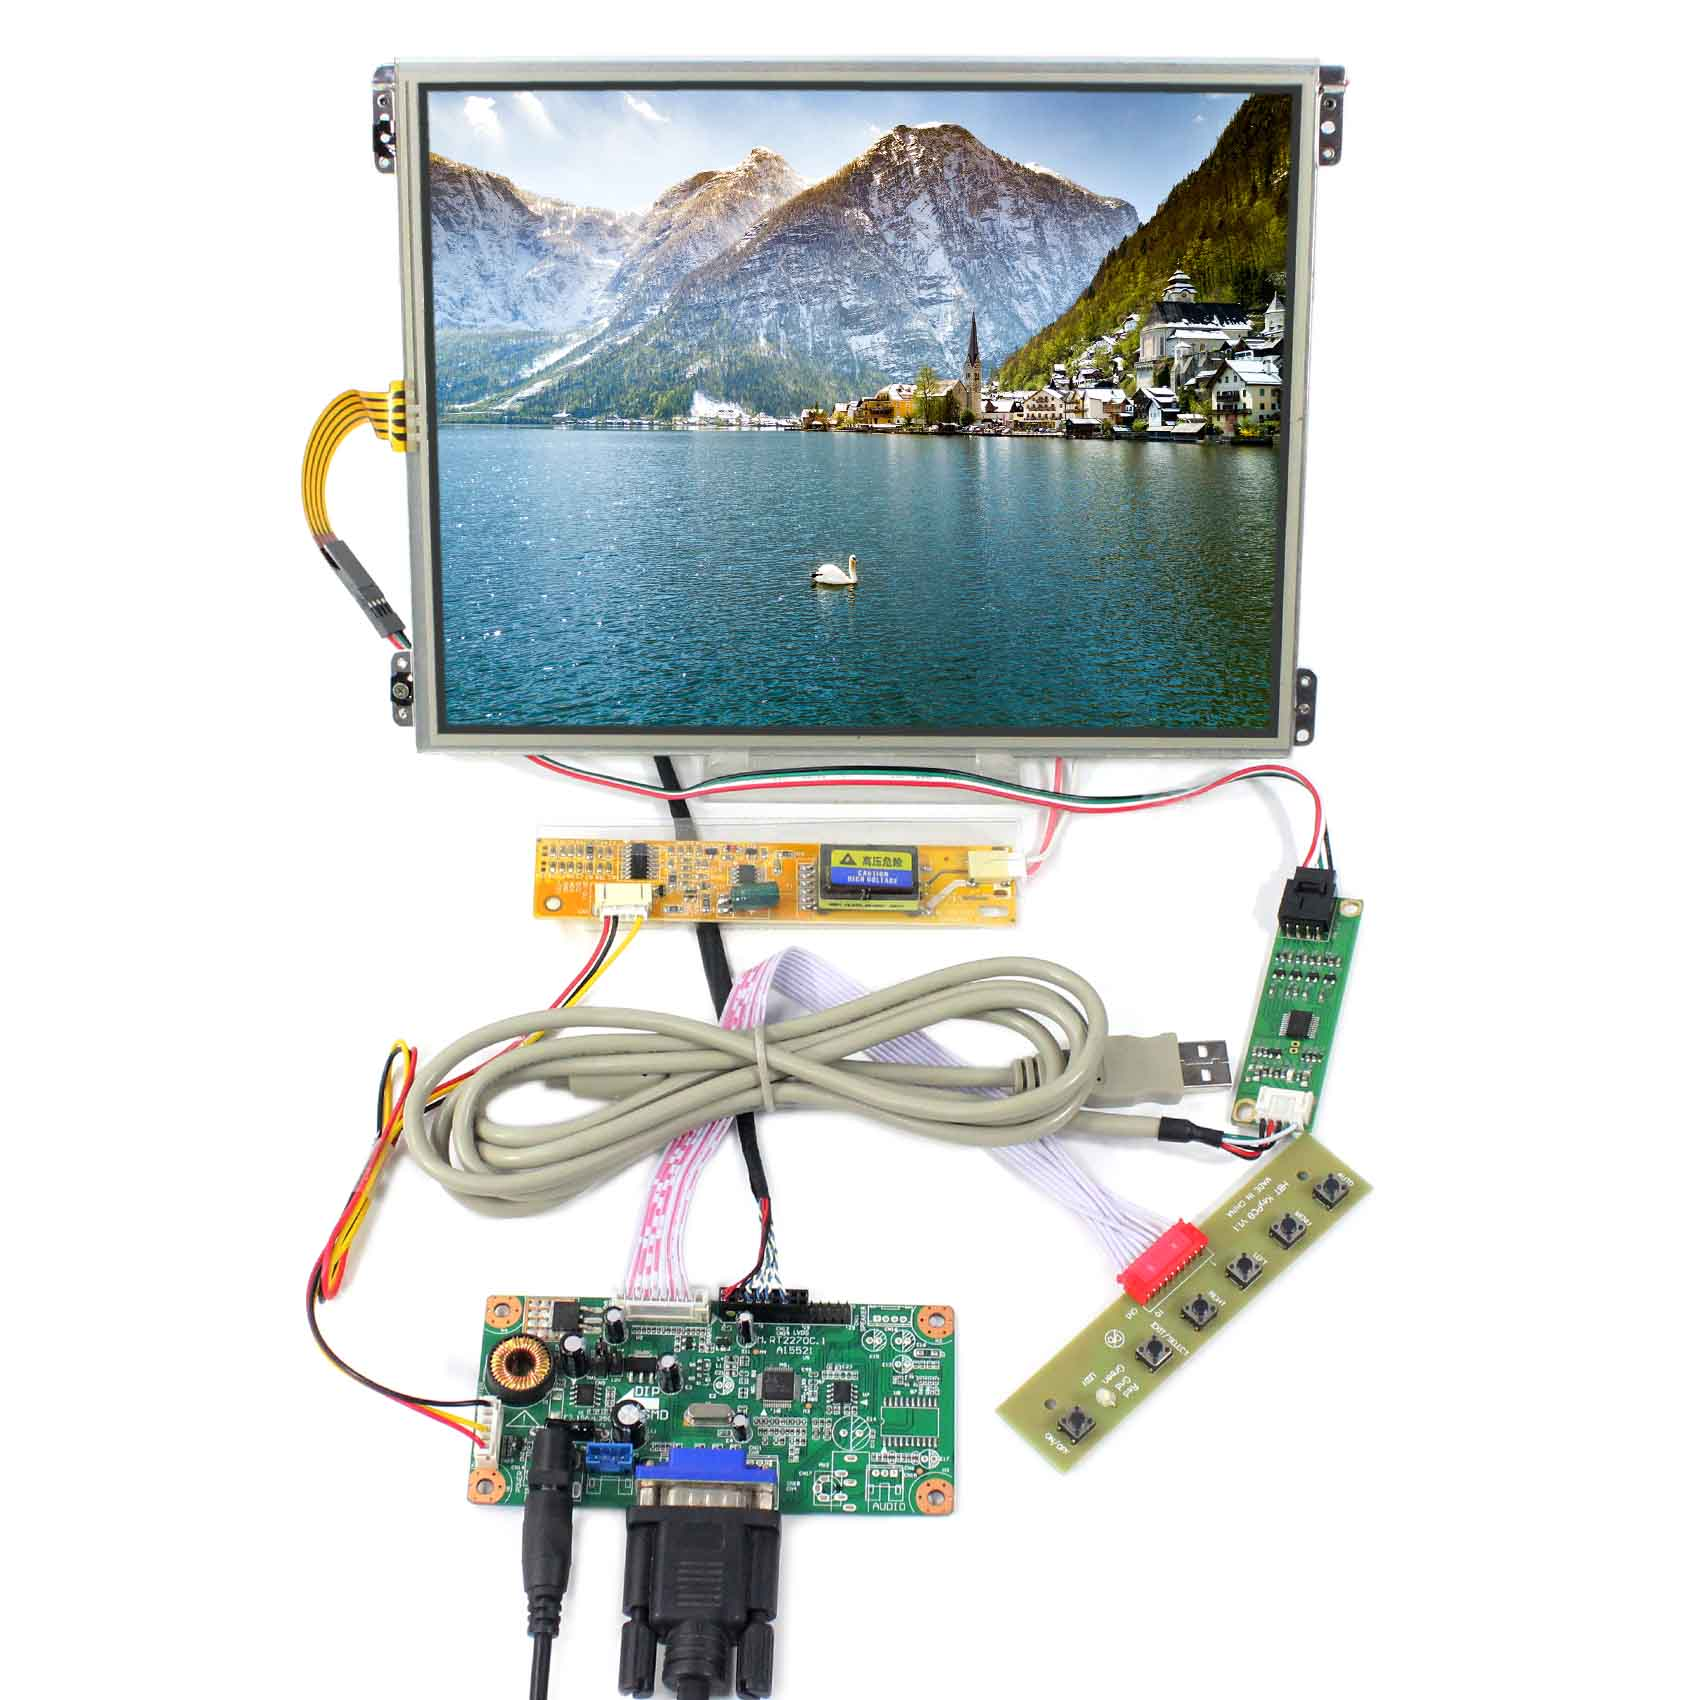 10.4inch  1024X768 IPS LCD Screen HT10X21-311 With Touch Panel VS104TP-A1 with VGA LCD Controller Board RT2270C-A10.4inch  1024X768 IPS LCD Screen HT10X21-311 With Touch Panel VS104TP-A1 with VGA LCD Controller Board RT2270C-A